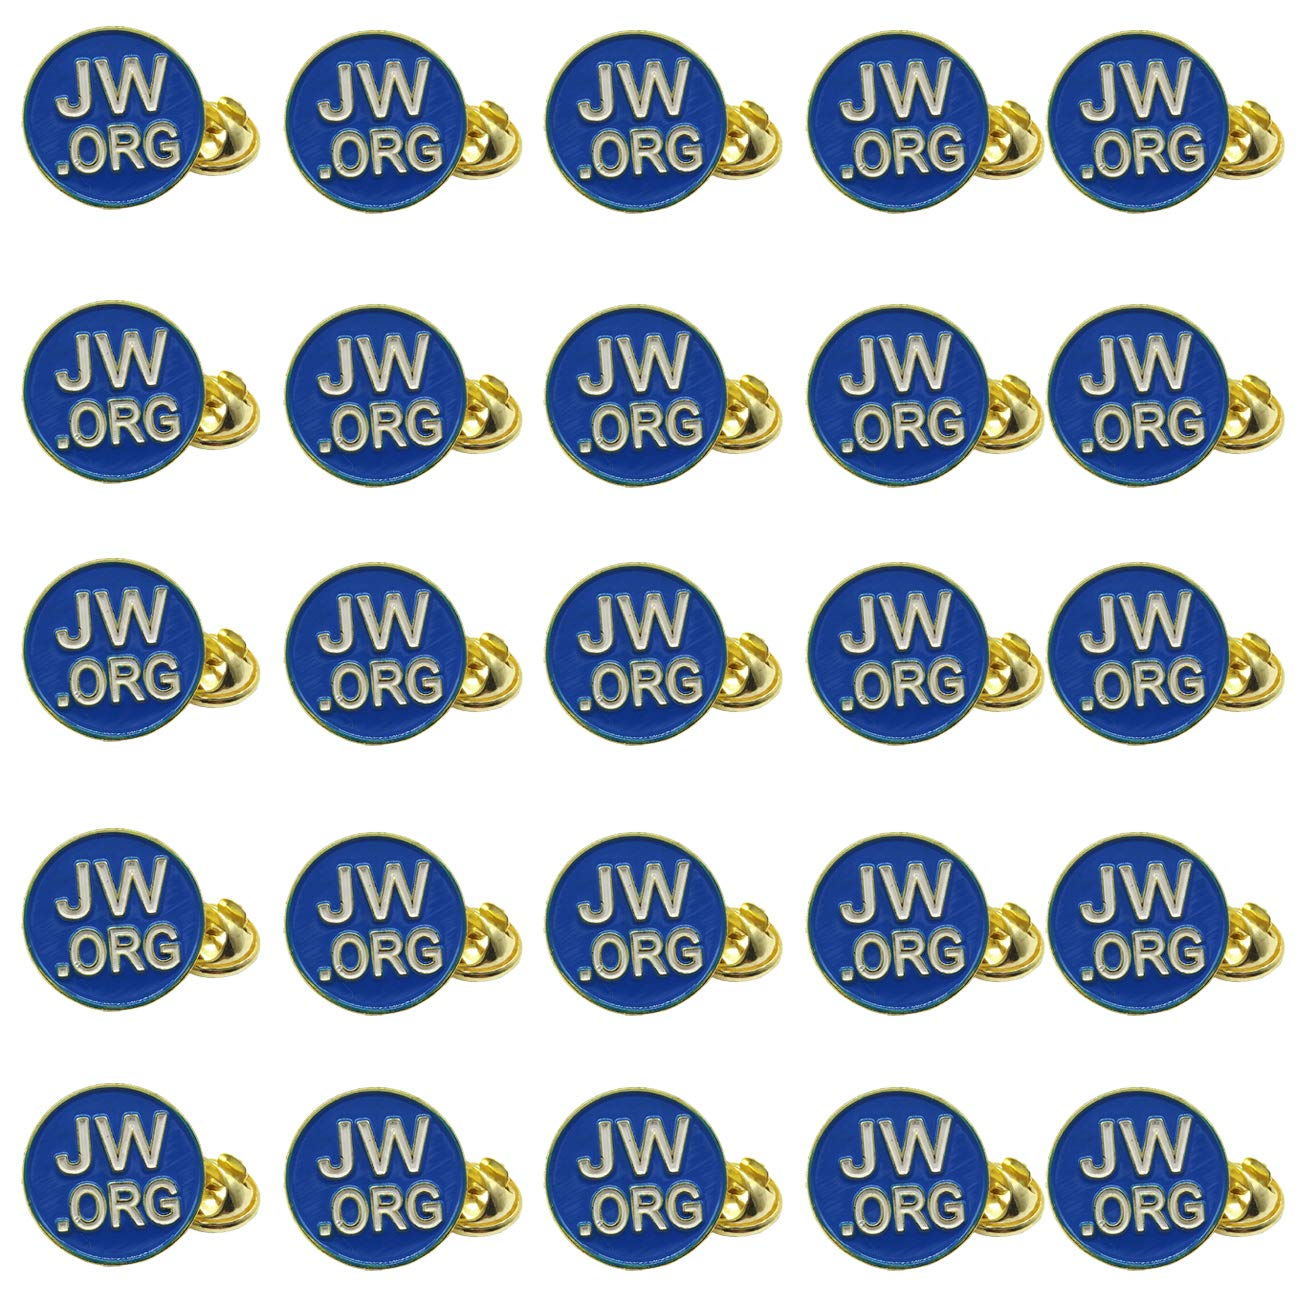 TIHOOD 25PCS Round Blue JW.org Lapel Pin - JW.org Neck Tie Hat Tack Clip Women or Men Suits-Gold Round Jehovah Witness Lapel Pin by TIHOOD